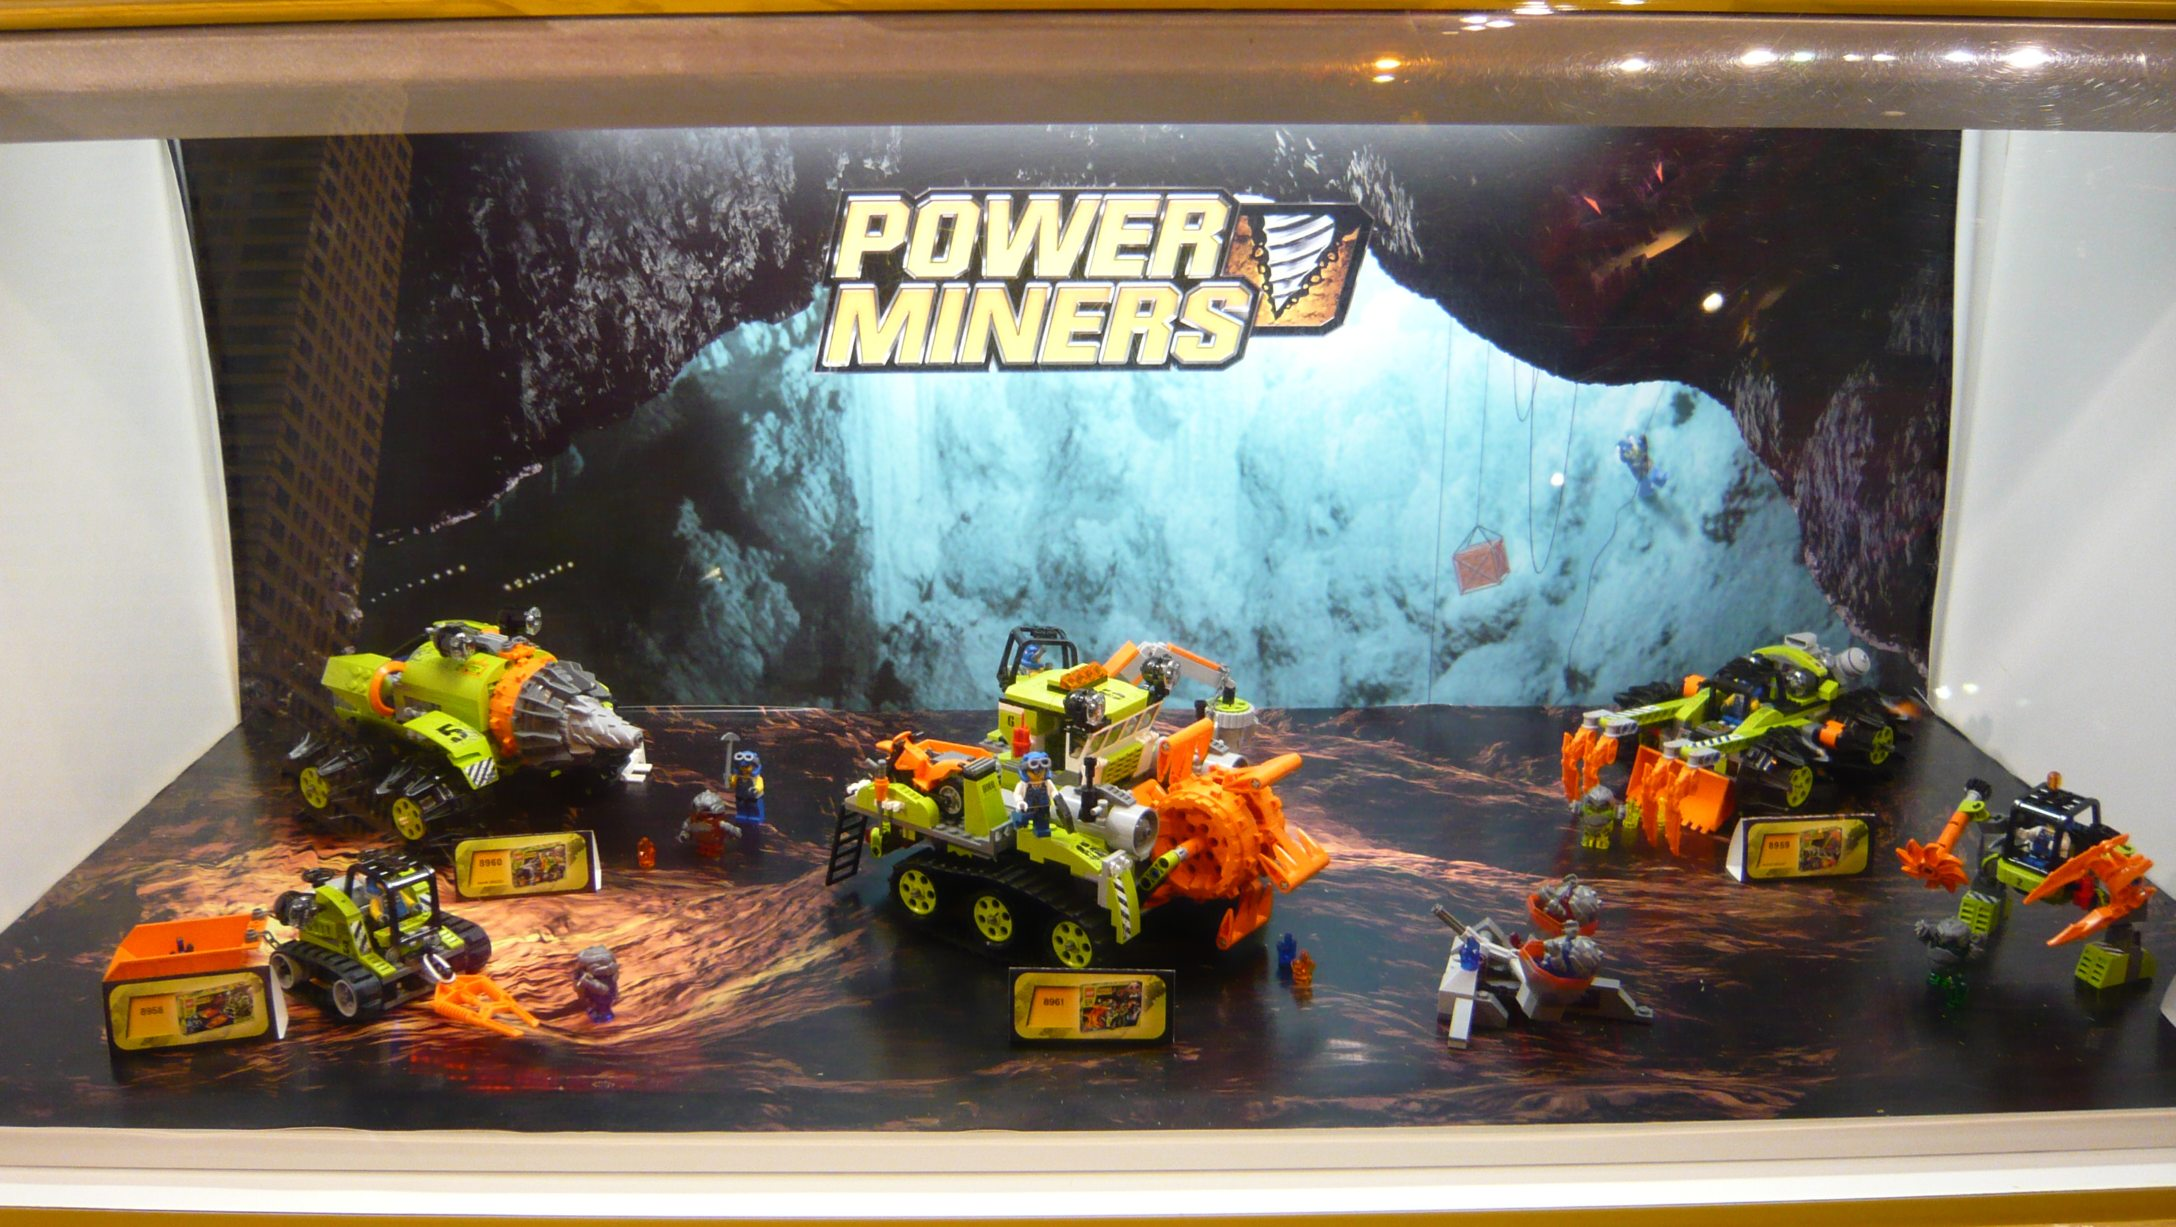 6_d_lego_toysrus_power_miners_display.jpg